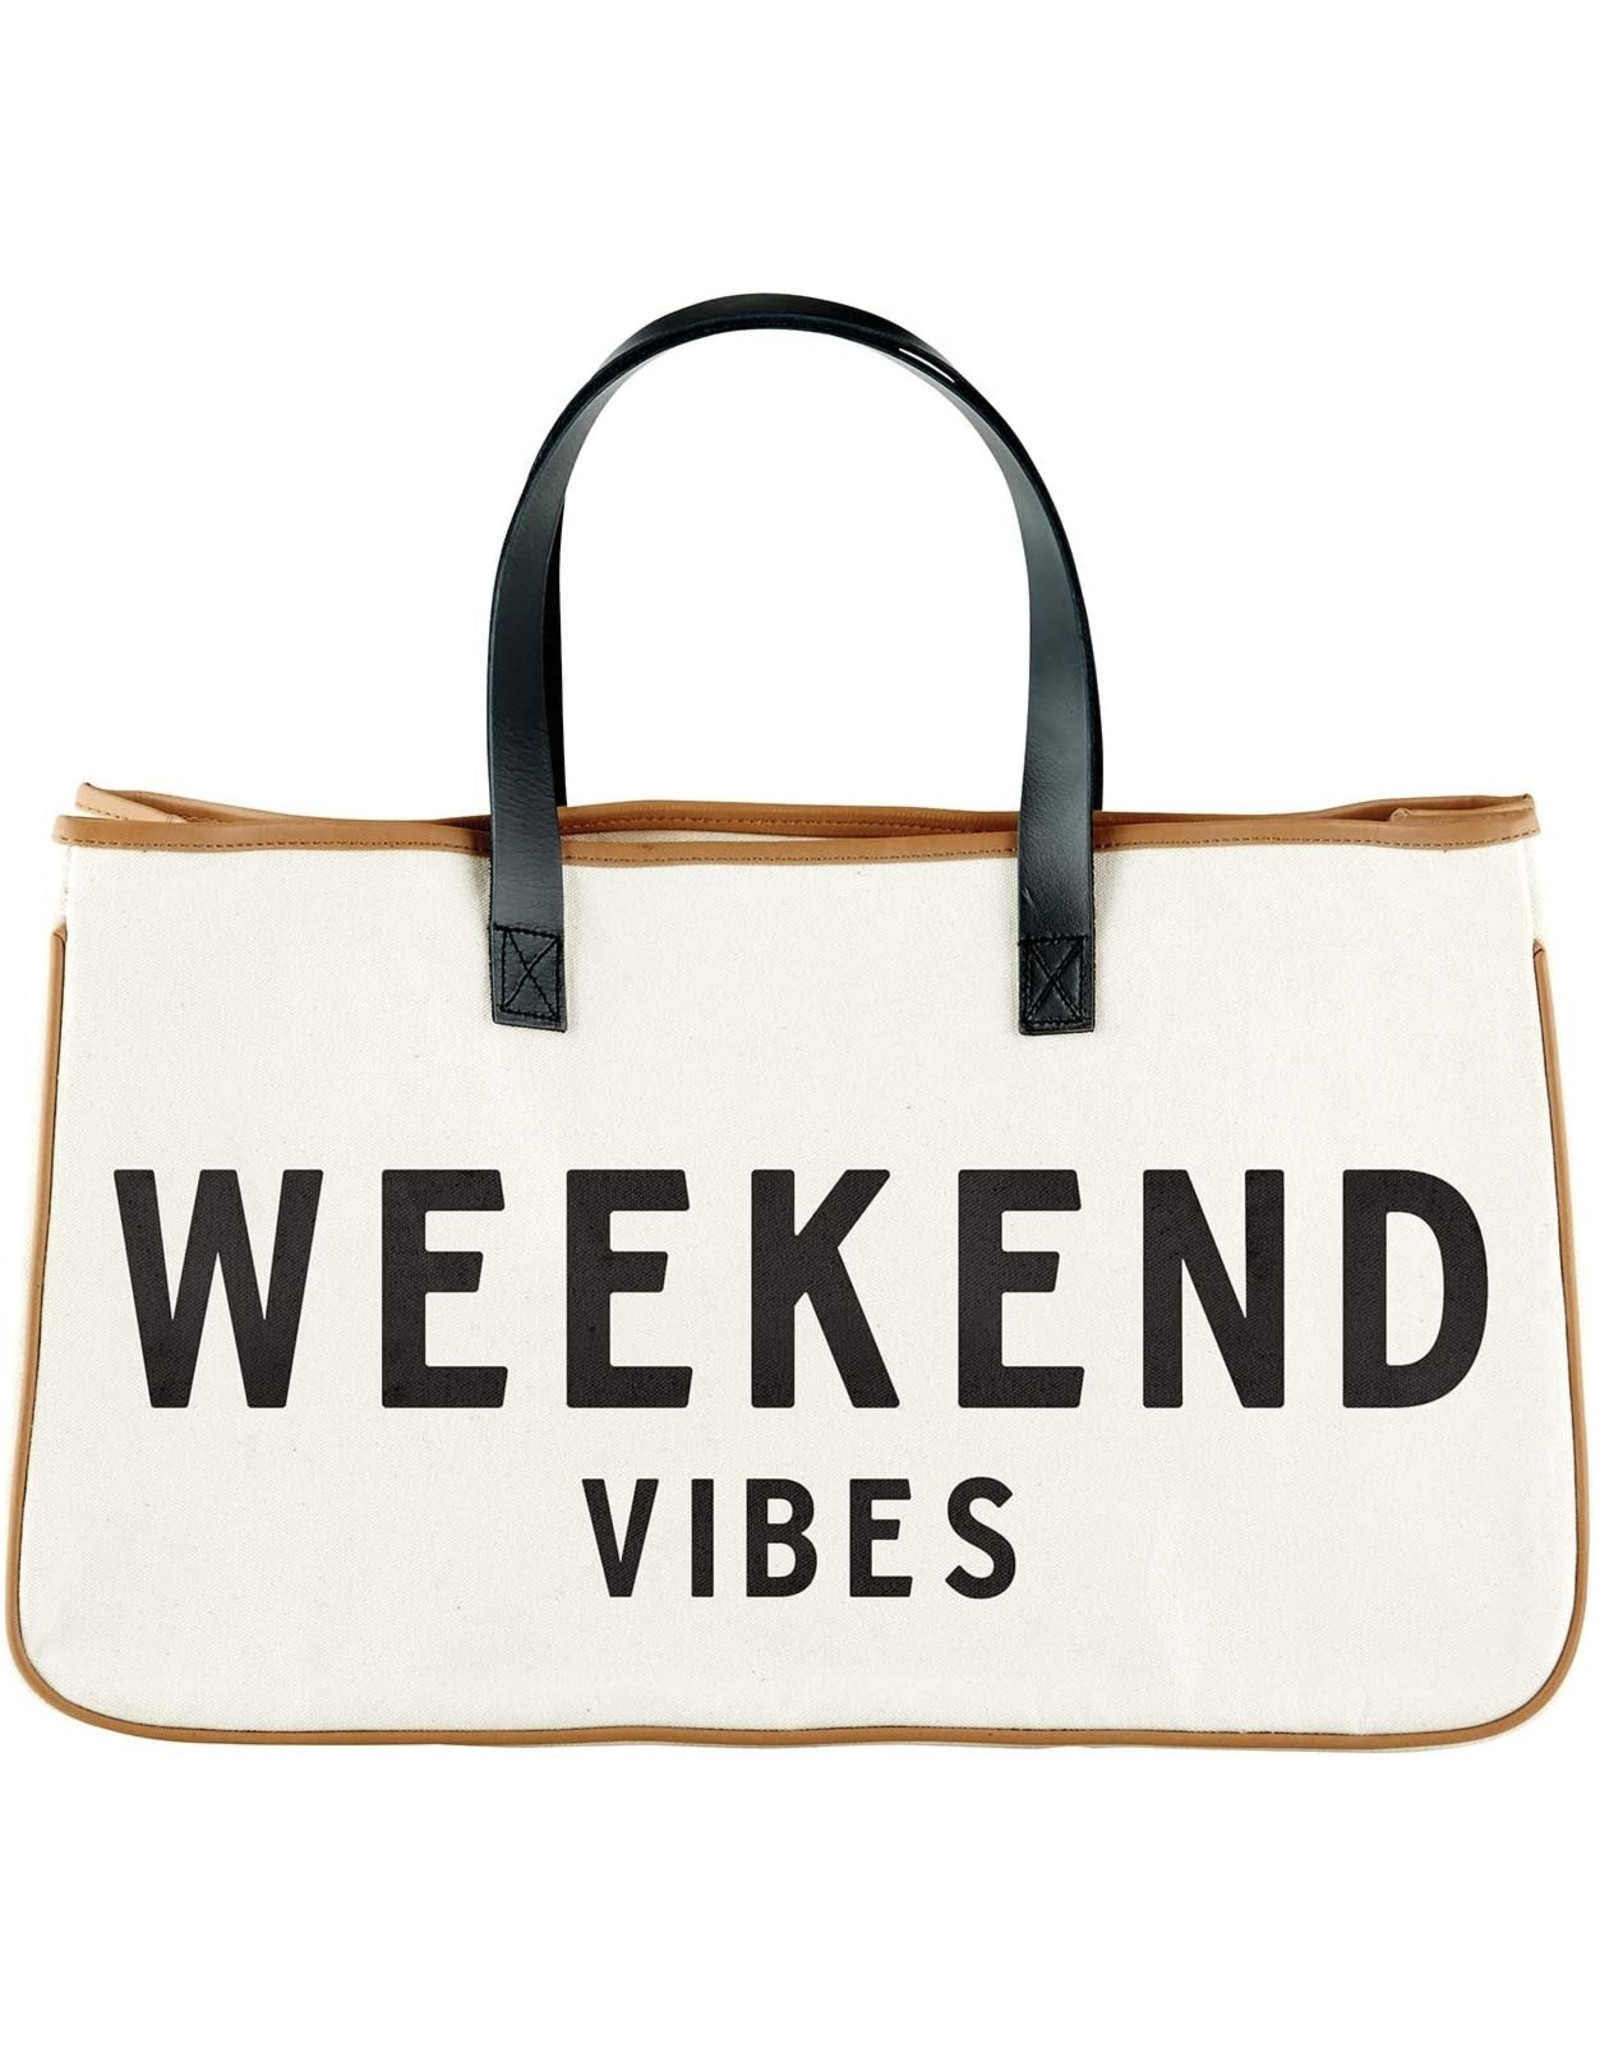 The Ritzy Gypsy WEEKEND VIBES Tote